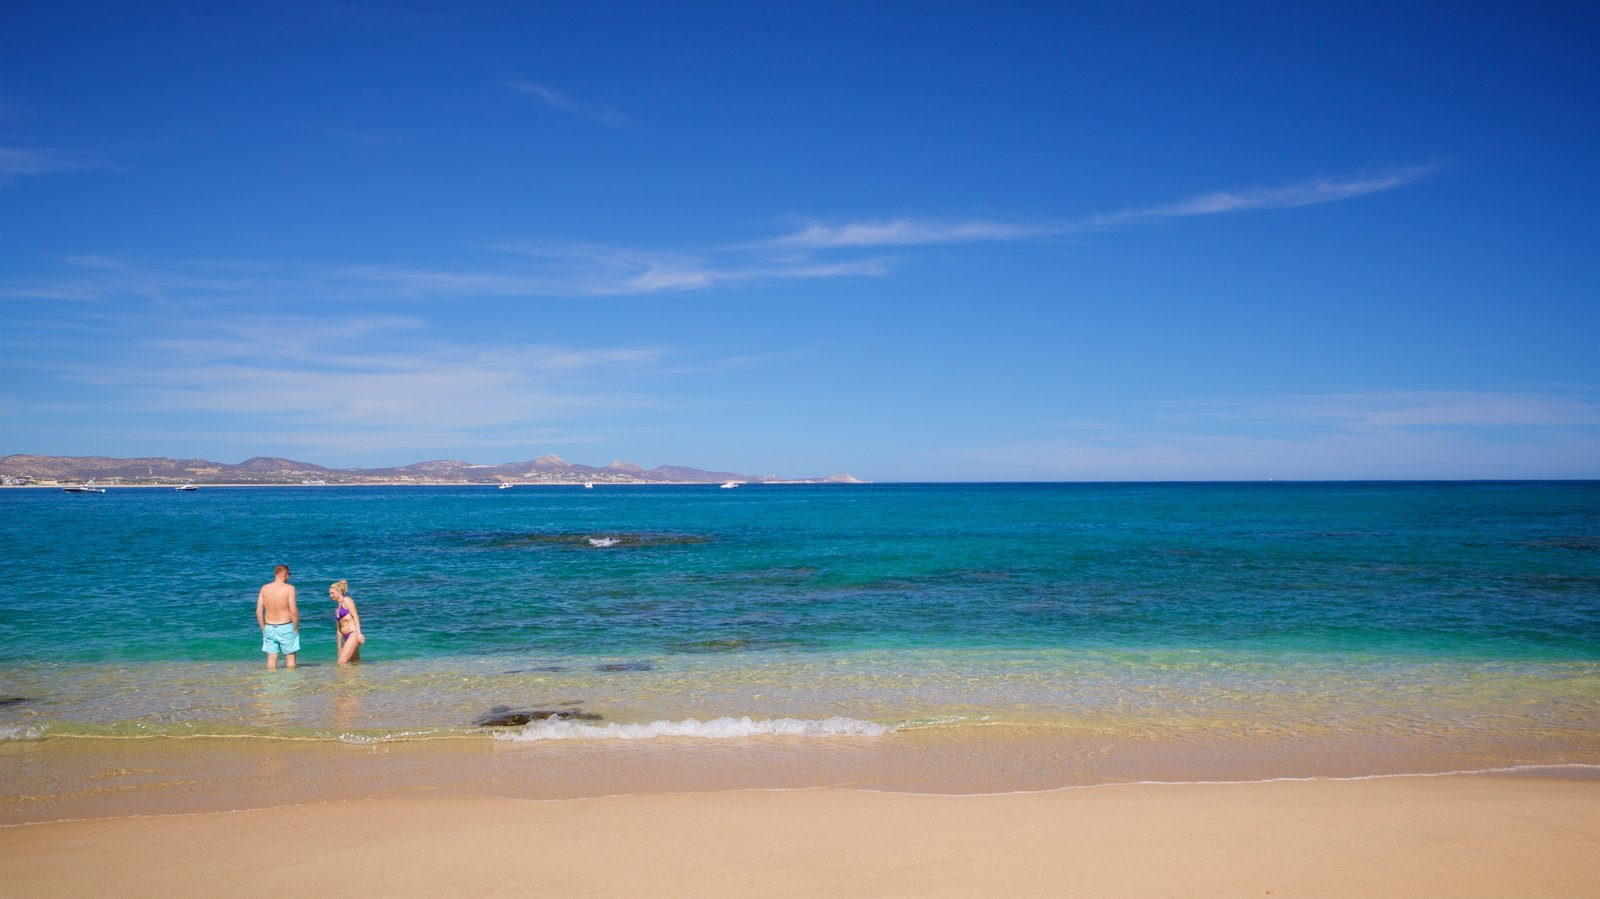 Palmilla Beach which includes general coastal views, a beach and swimming